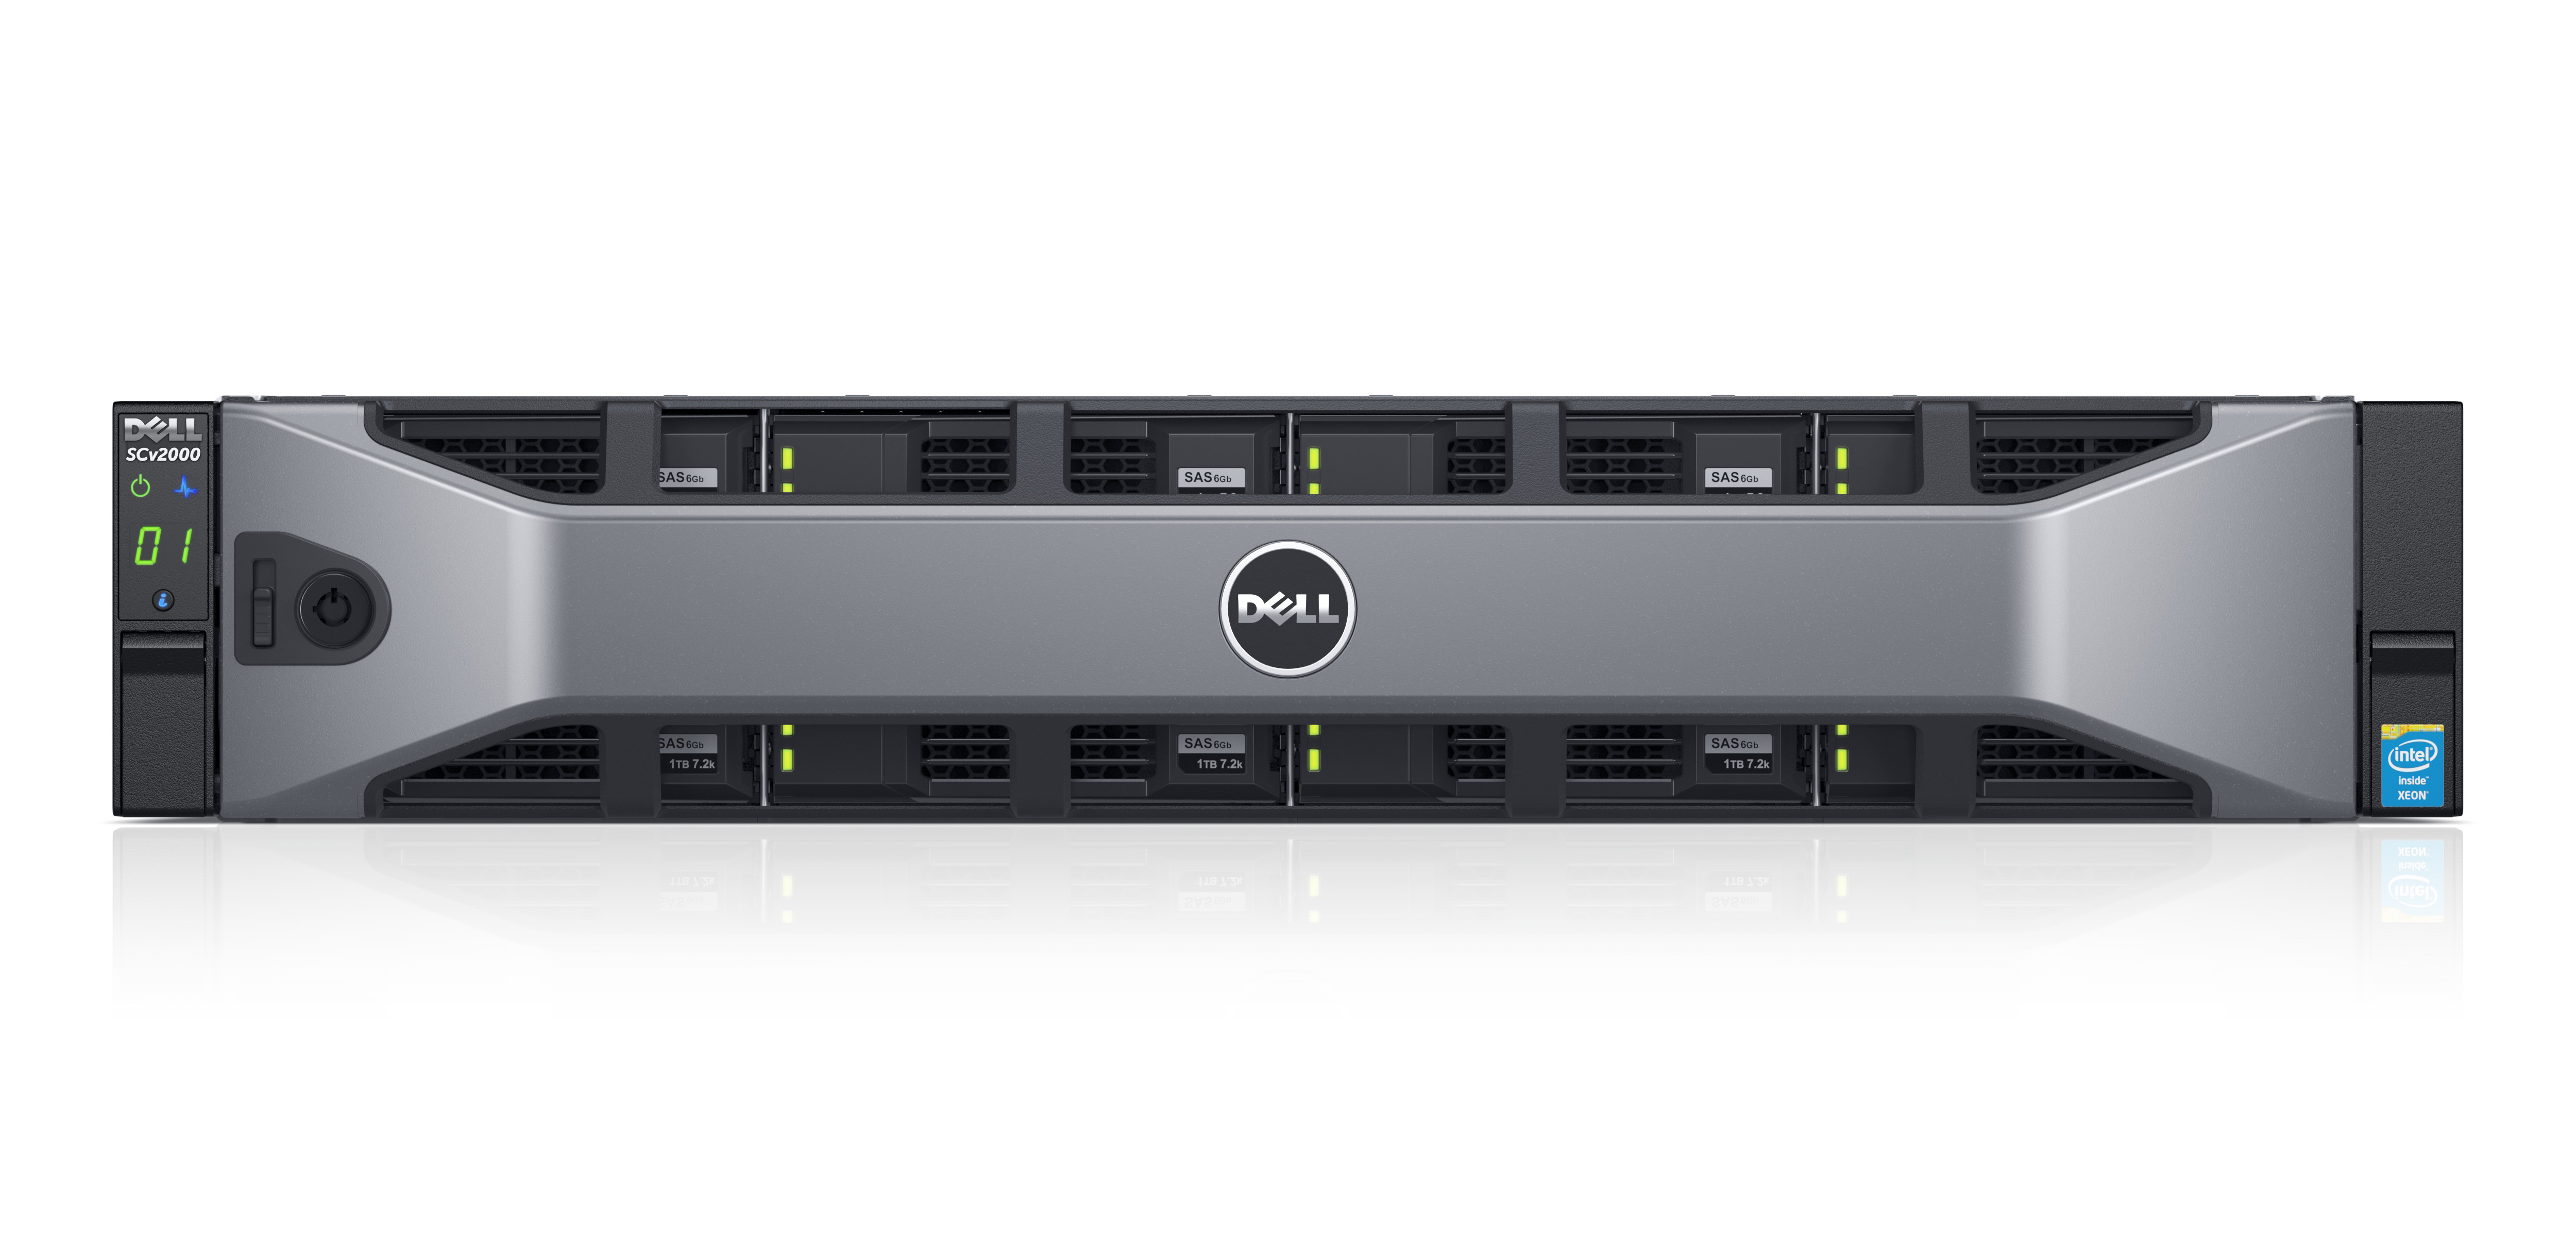 Dell Broadens Storage Portfolio With High Performing Cost Efficient Solutions Designed For Future Growth Business Wire